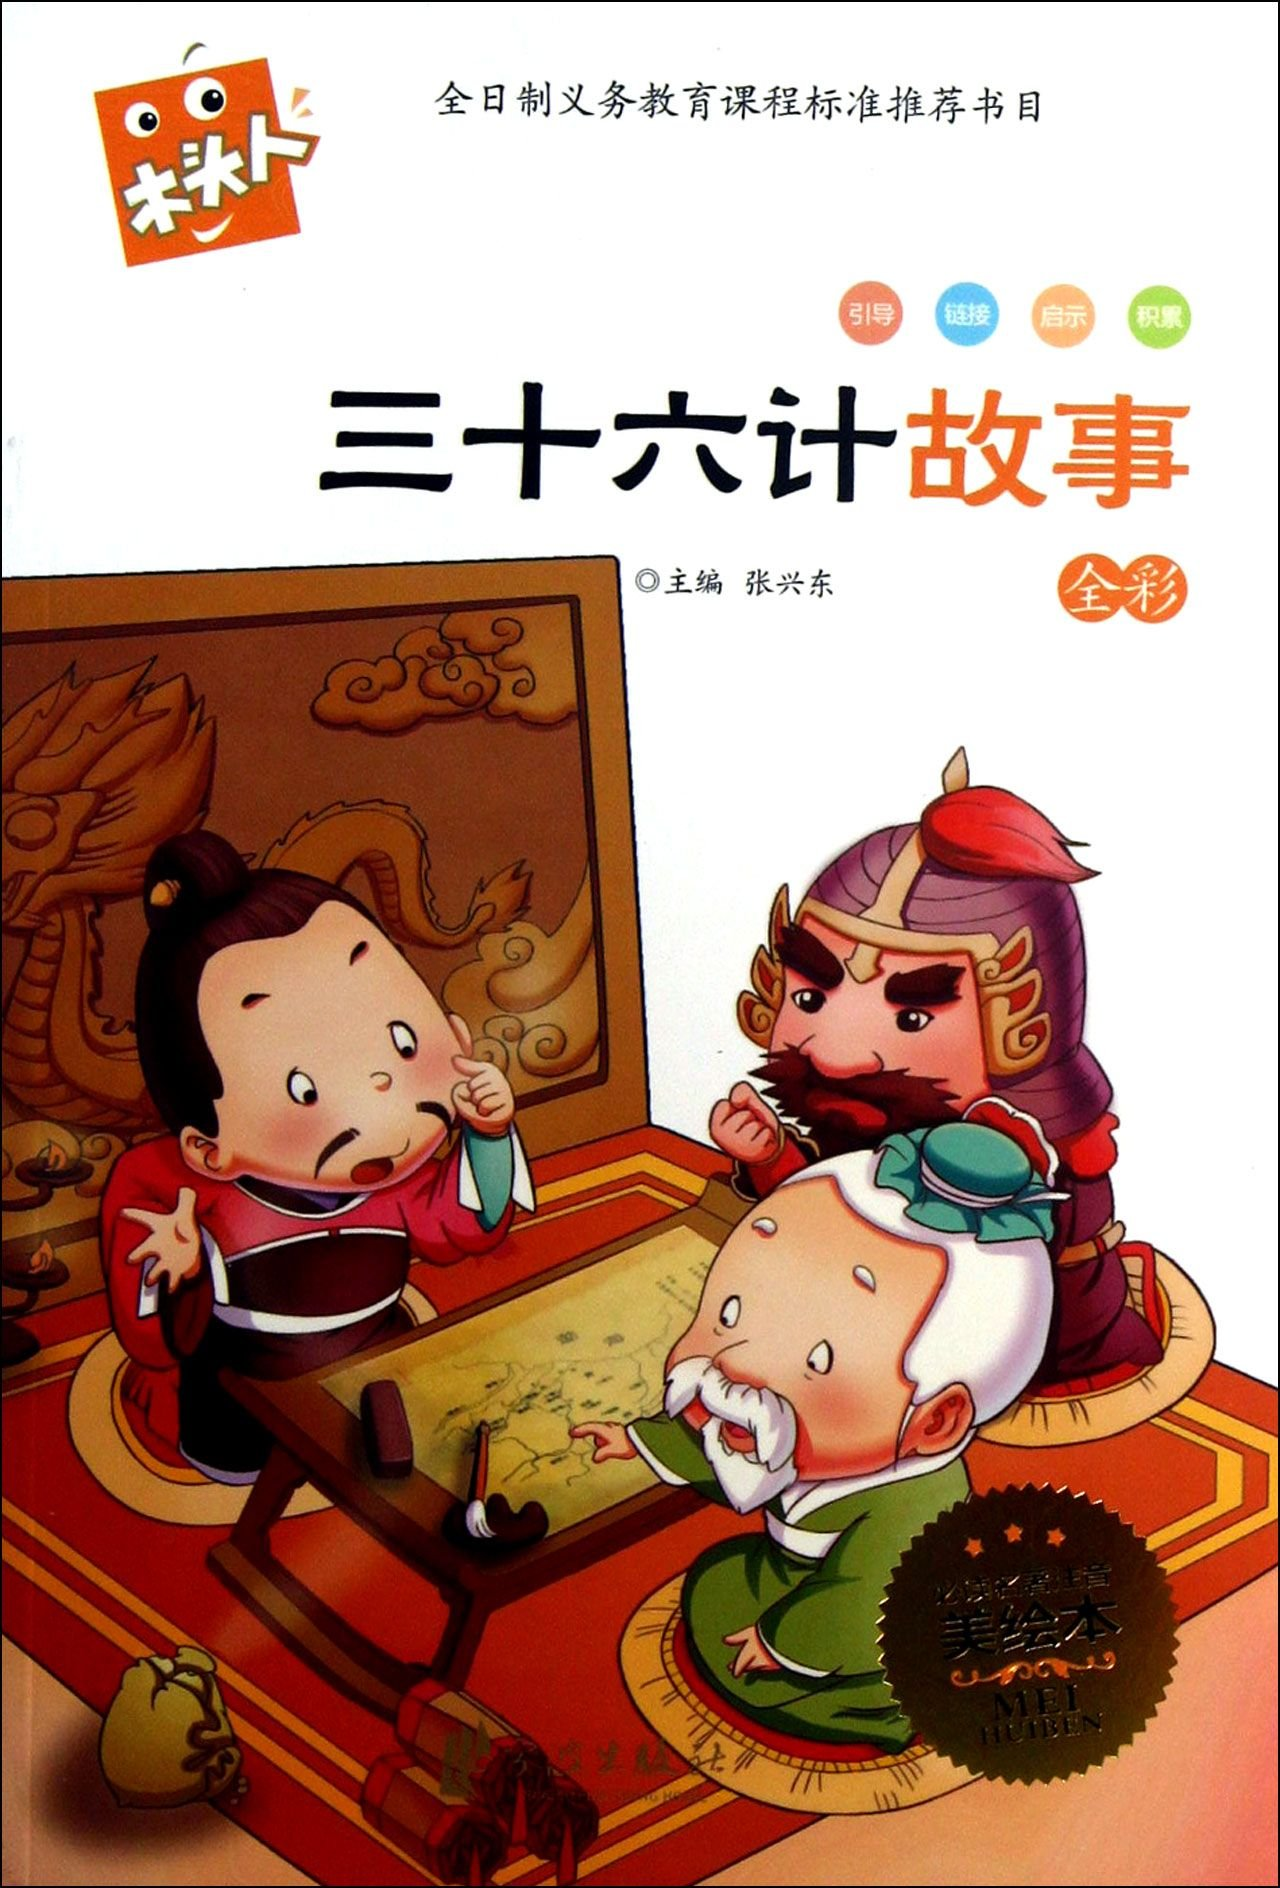 Read Online Stories of 36 strategies( Full-color Phonetic Books with Beautiful Pictures ) (Chinese Edition) pdf epub